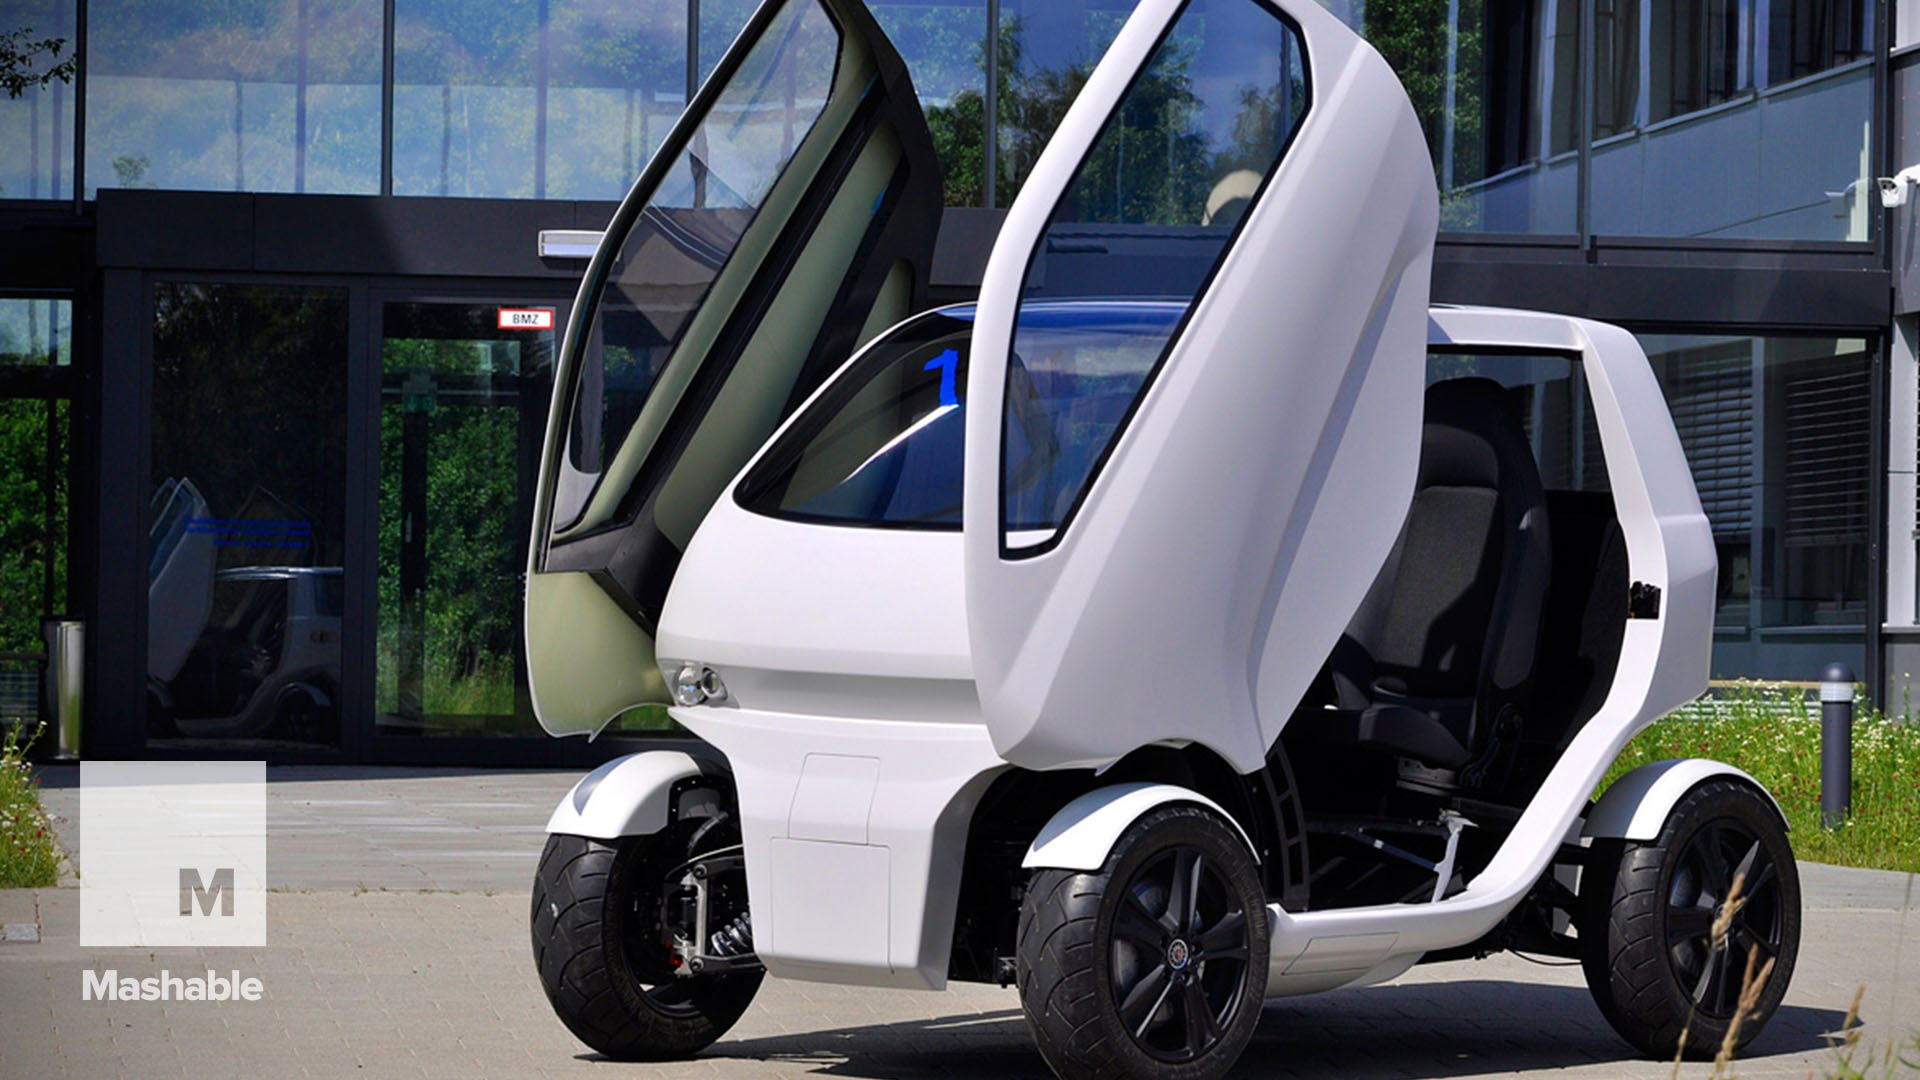 This tiny car can change shape, drive sideways